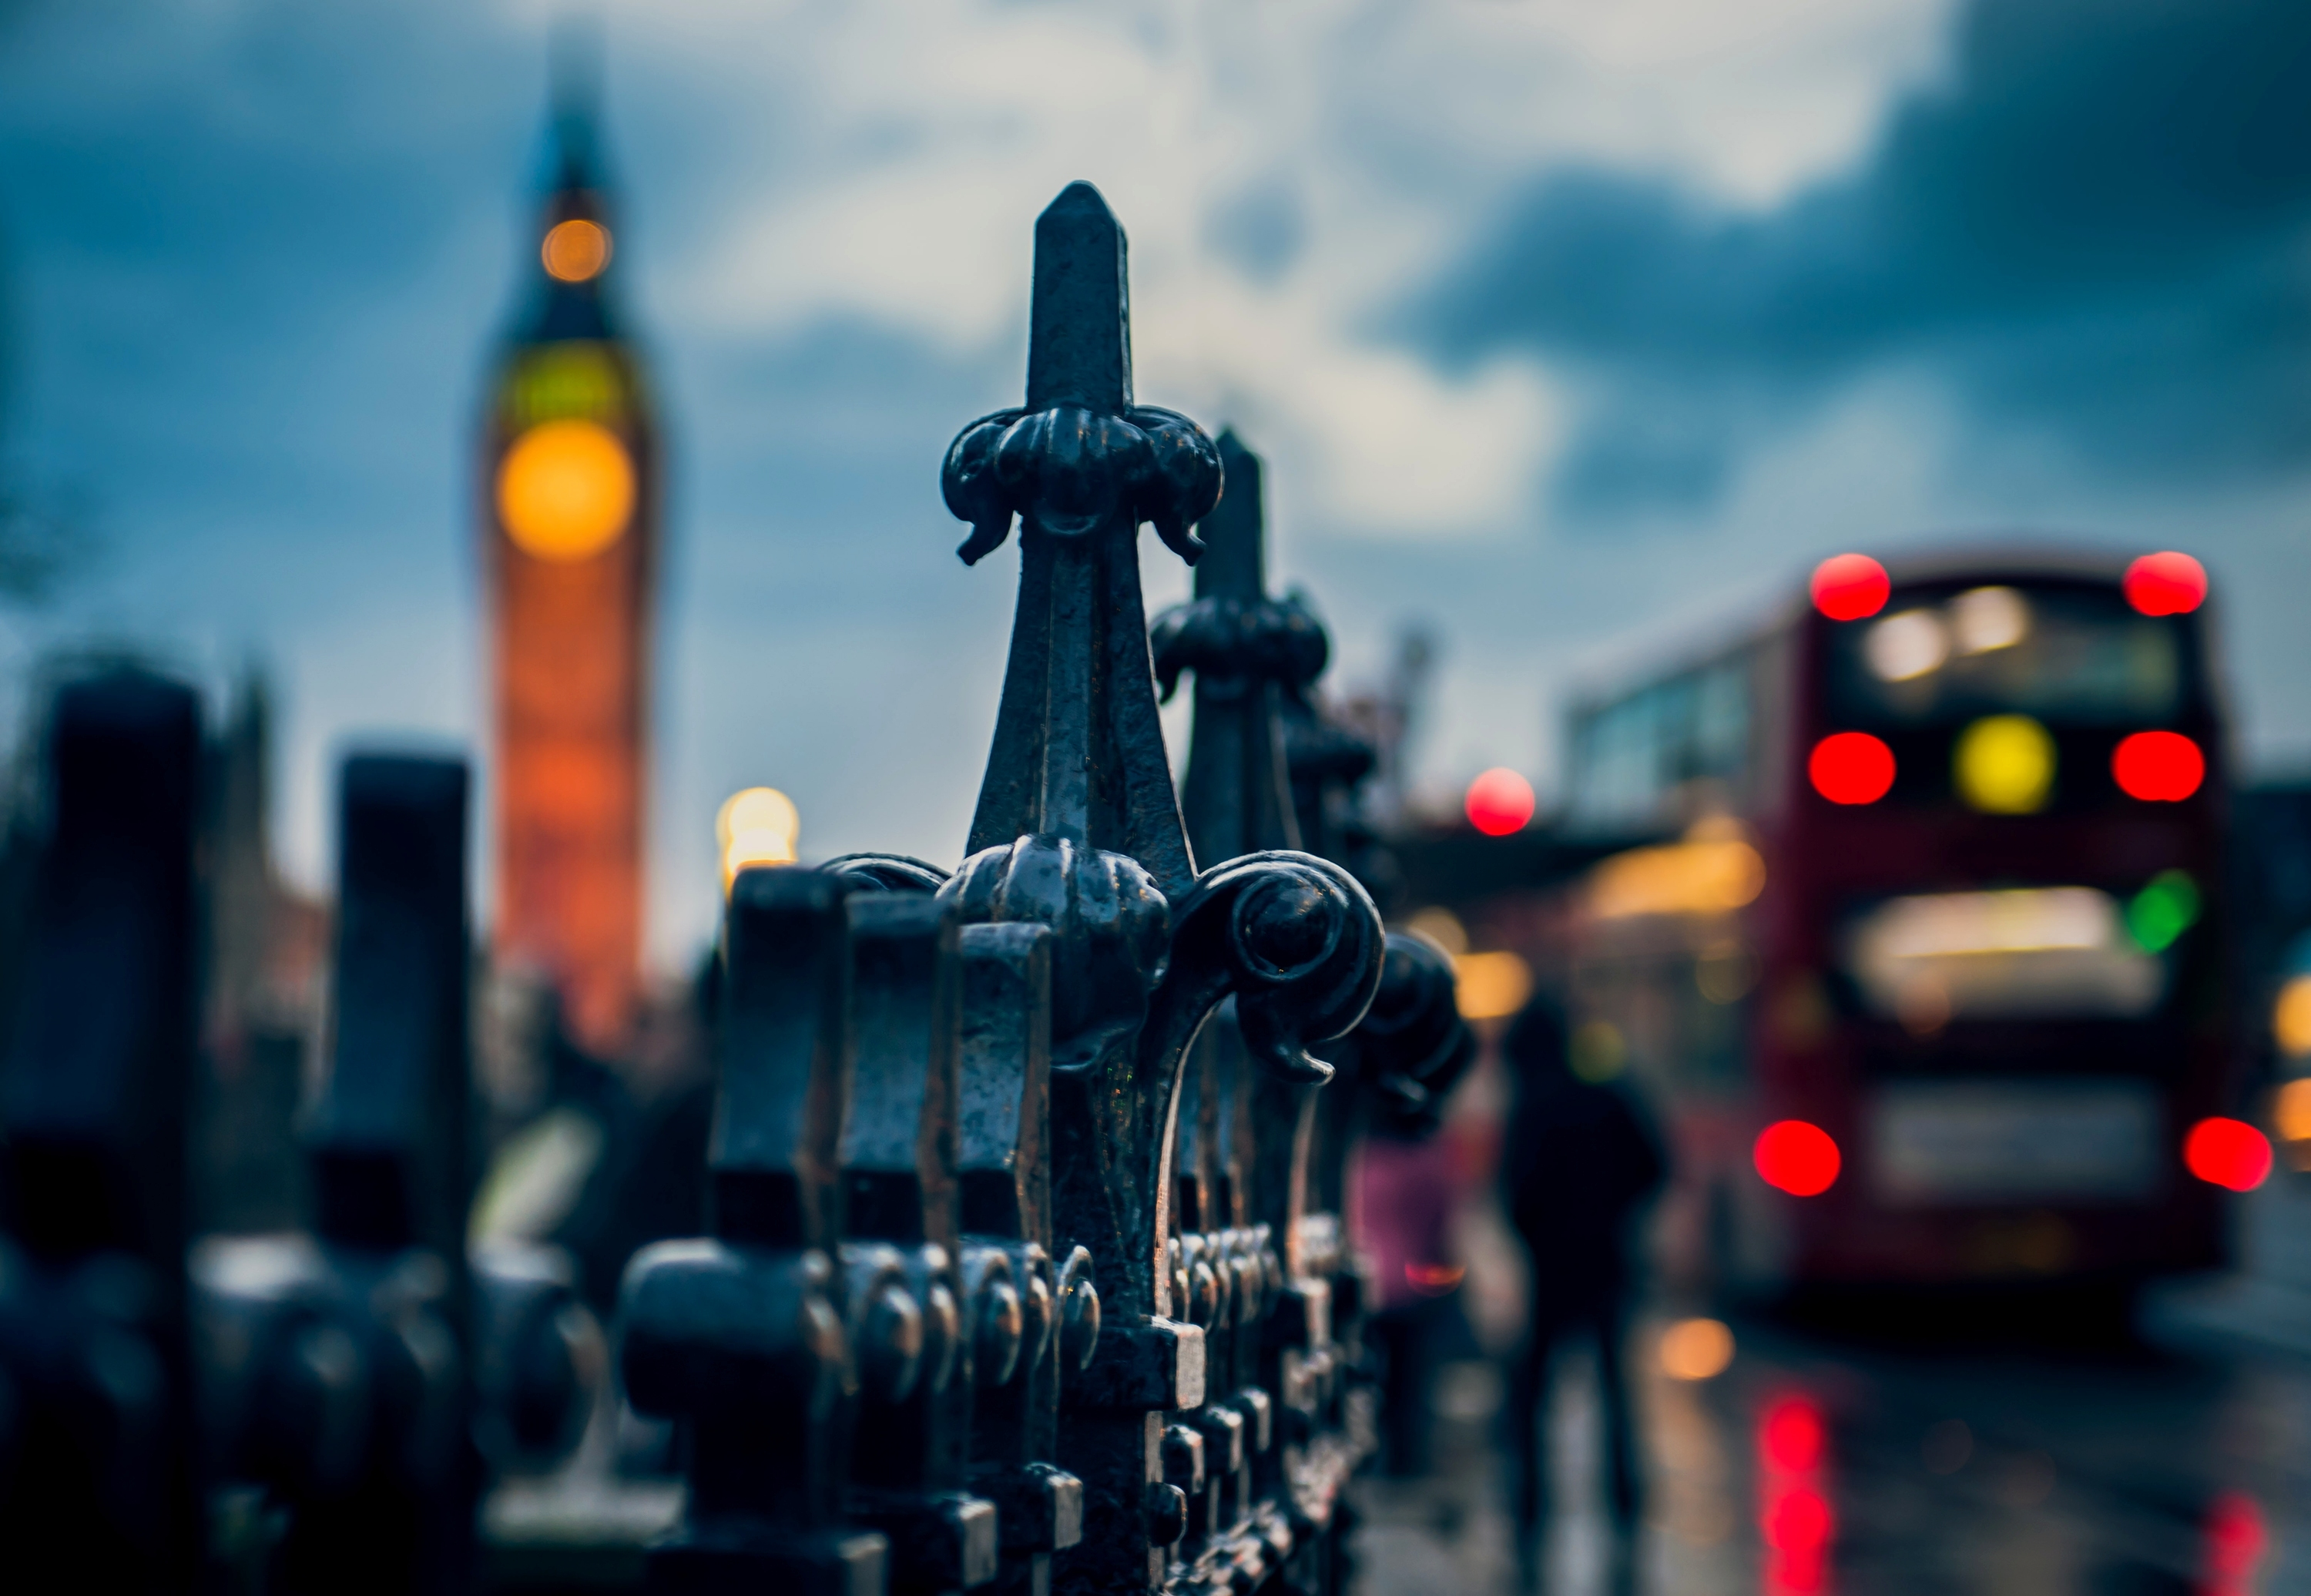 london-wallpaper-wide-picture-qmats3m1i7